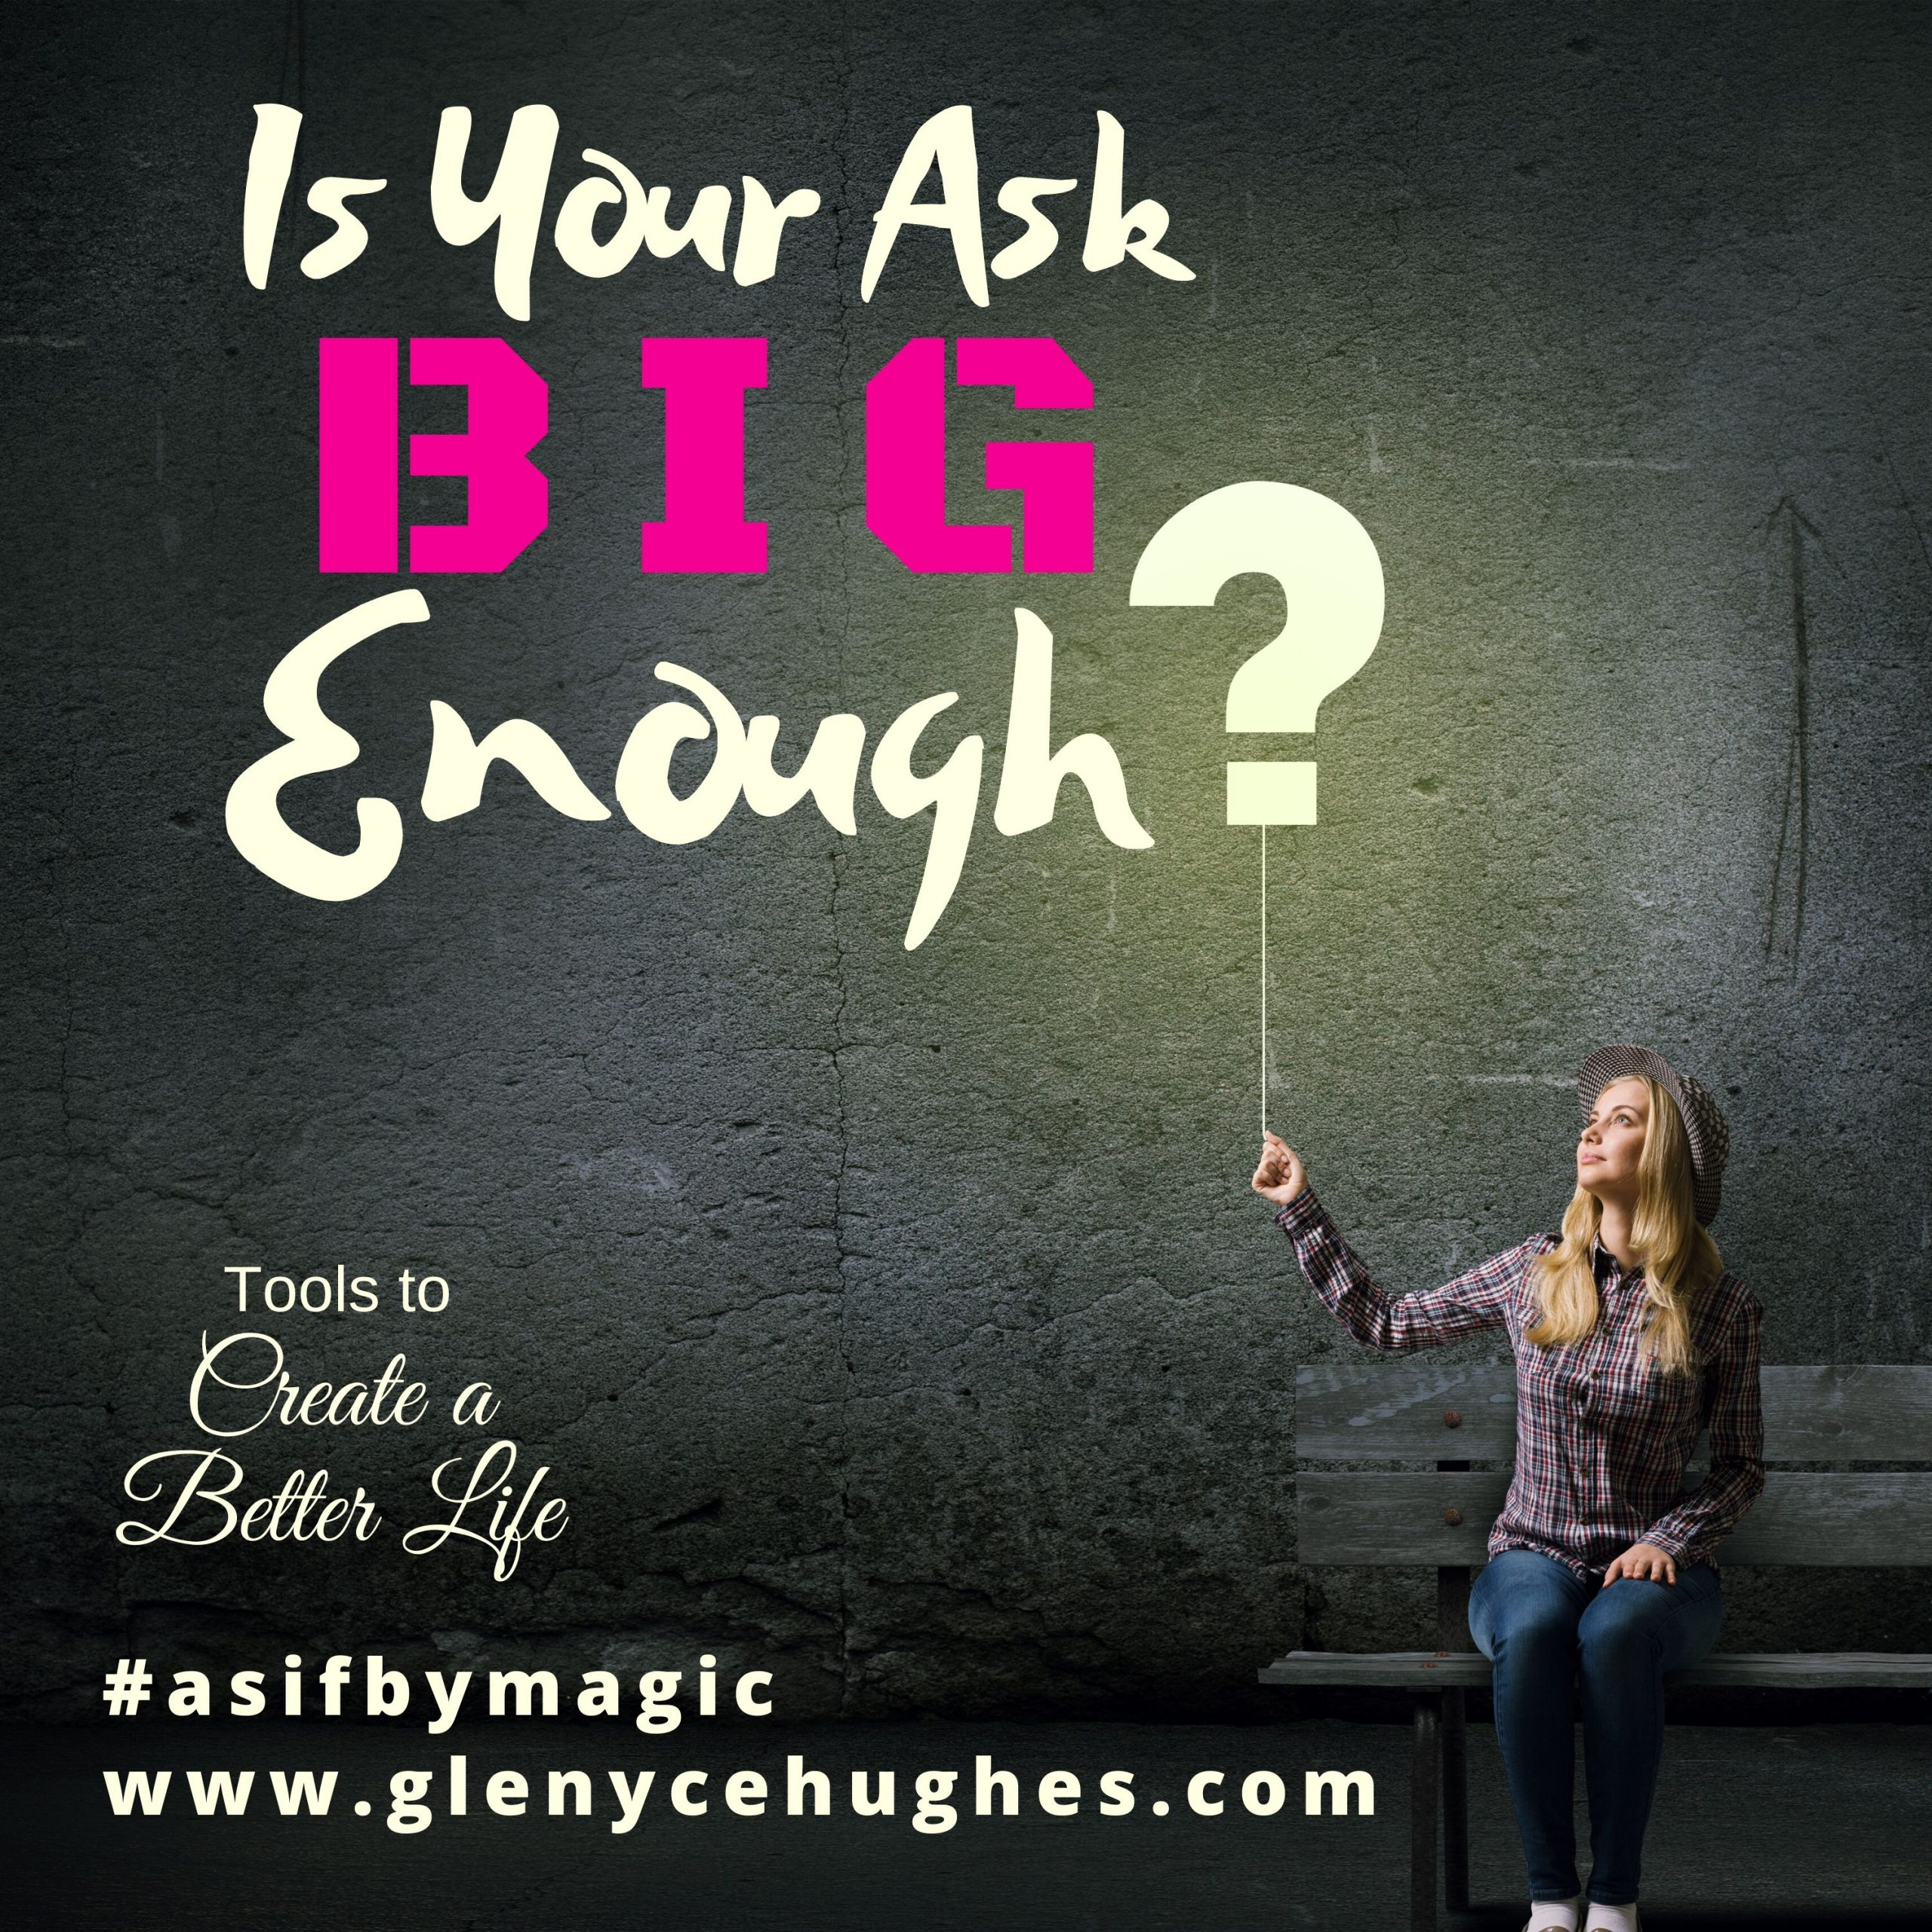 Is Your ASK Big Enough?